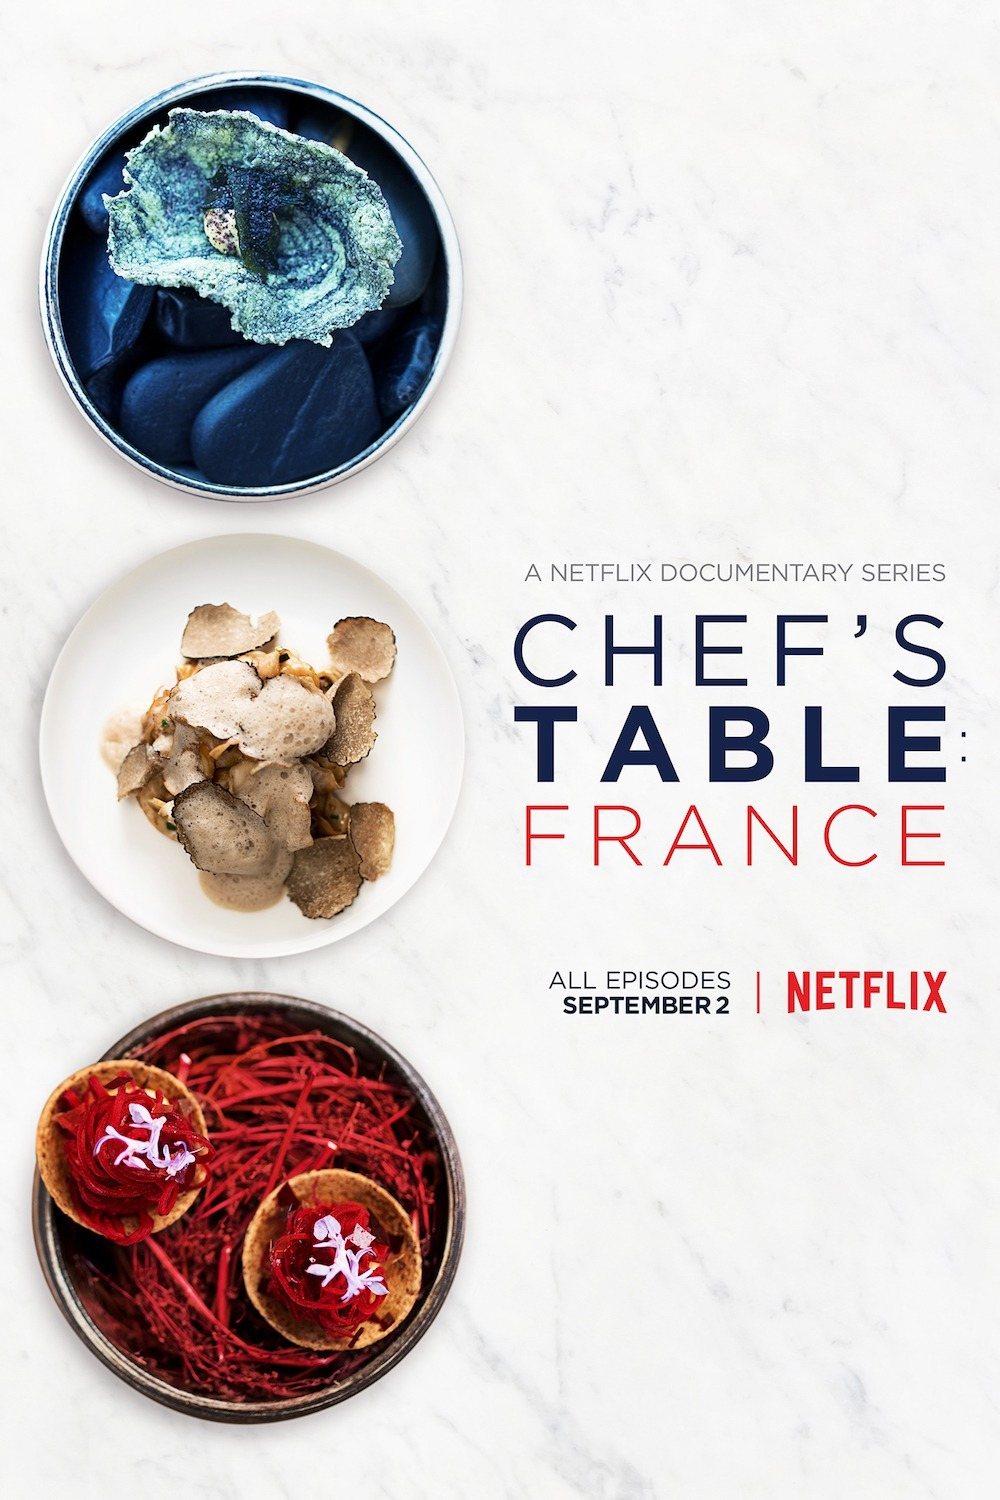 Chef's Table: France kapak